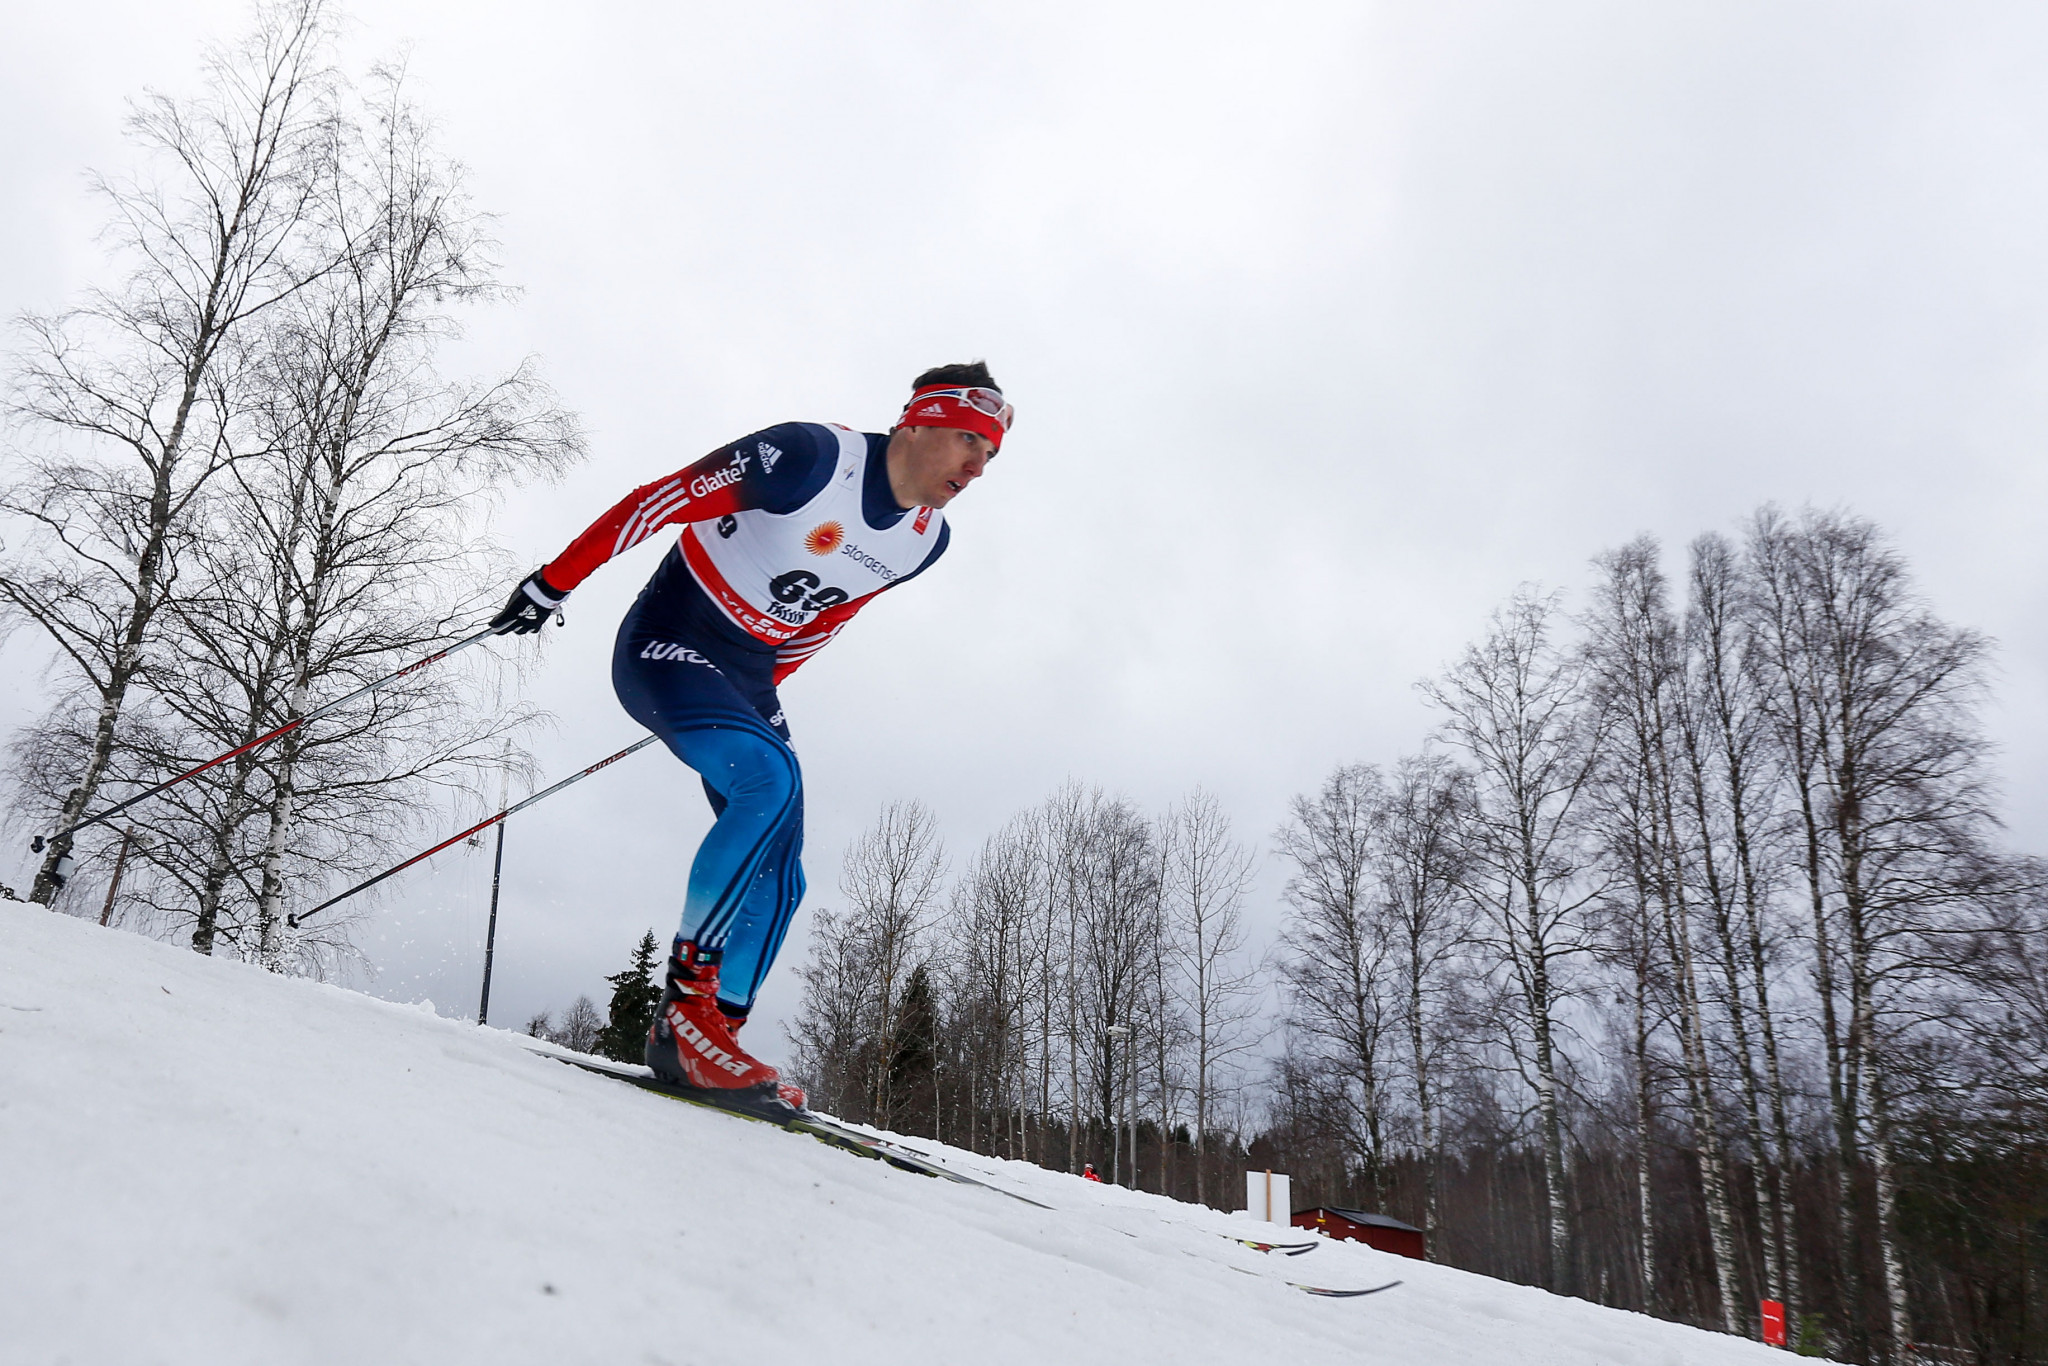 Bottles of samples provided by cross-country skier Evgeniy Belov revealed the presence of marks indicative of tampering, the reasoned decision from the Oswald Commission revealed ©Getty Images